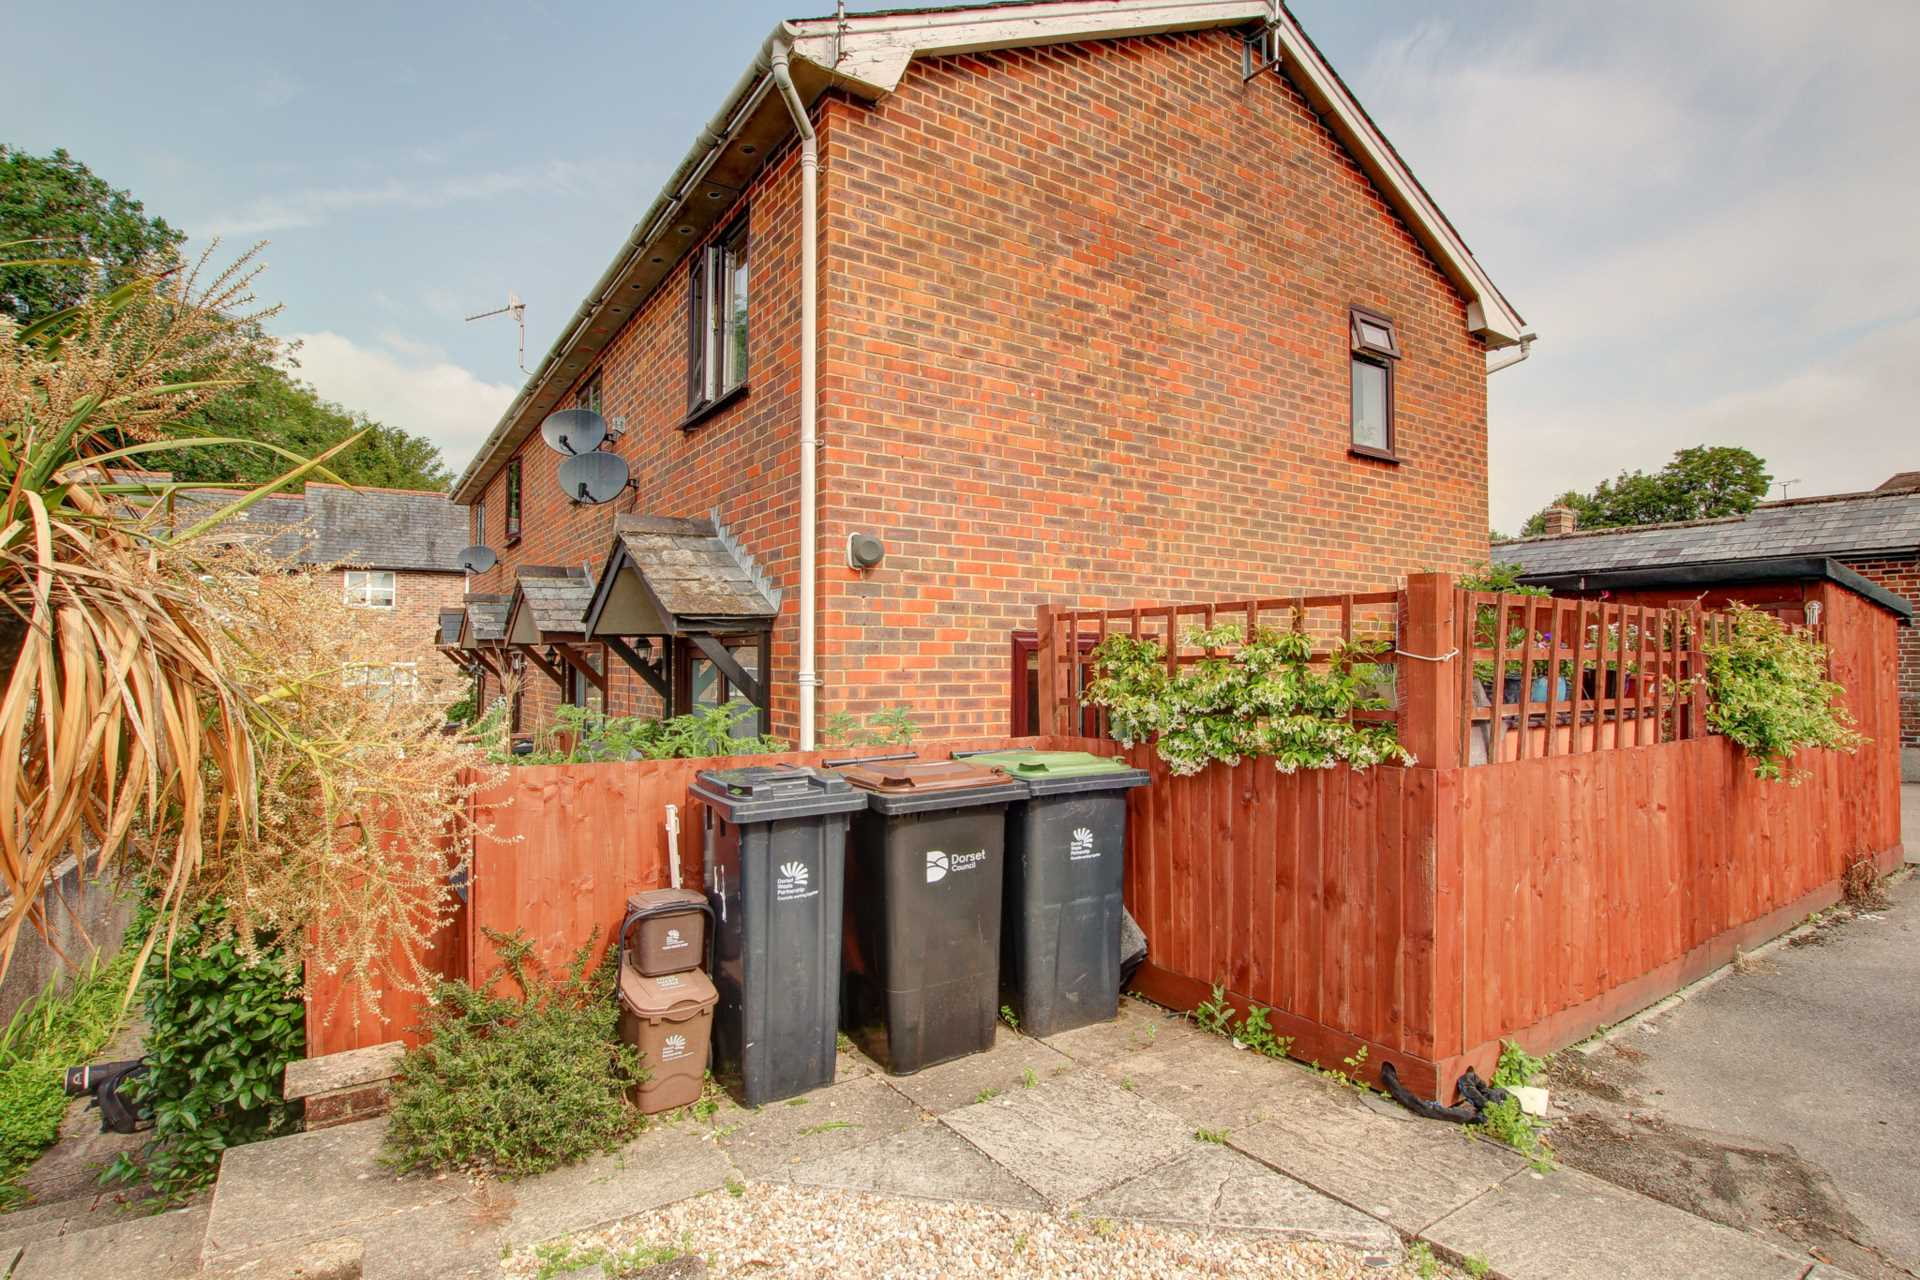 2 bed end of terrace house for sale in The Mews, Shorts Lane, Blandford Forum, Blandford Forum  - Property Image 12